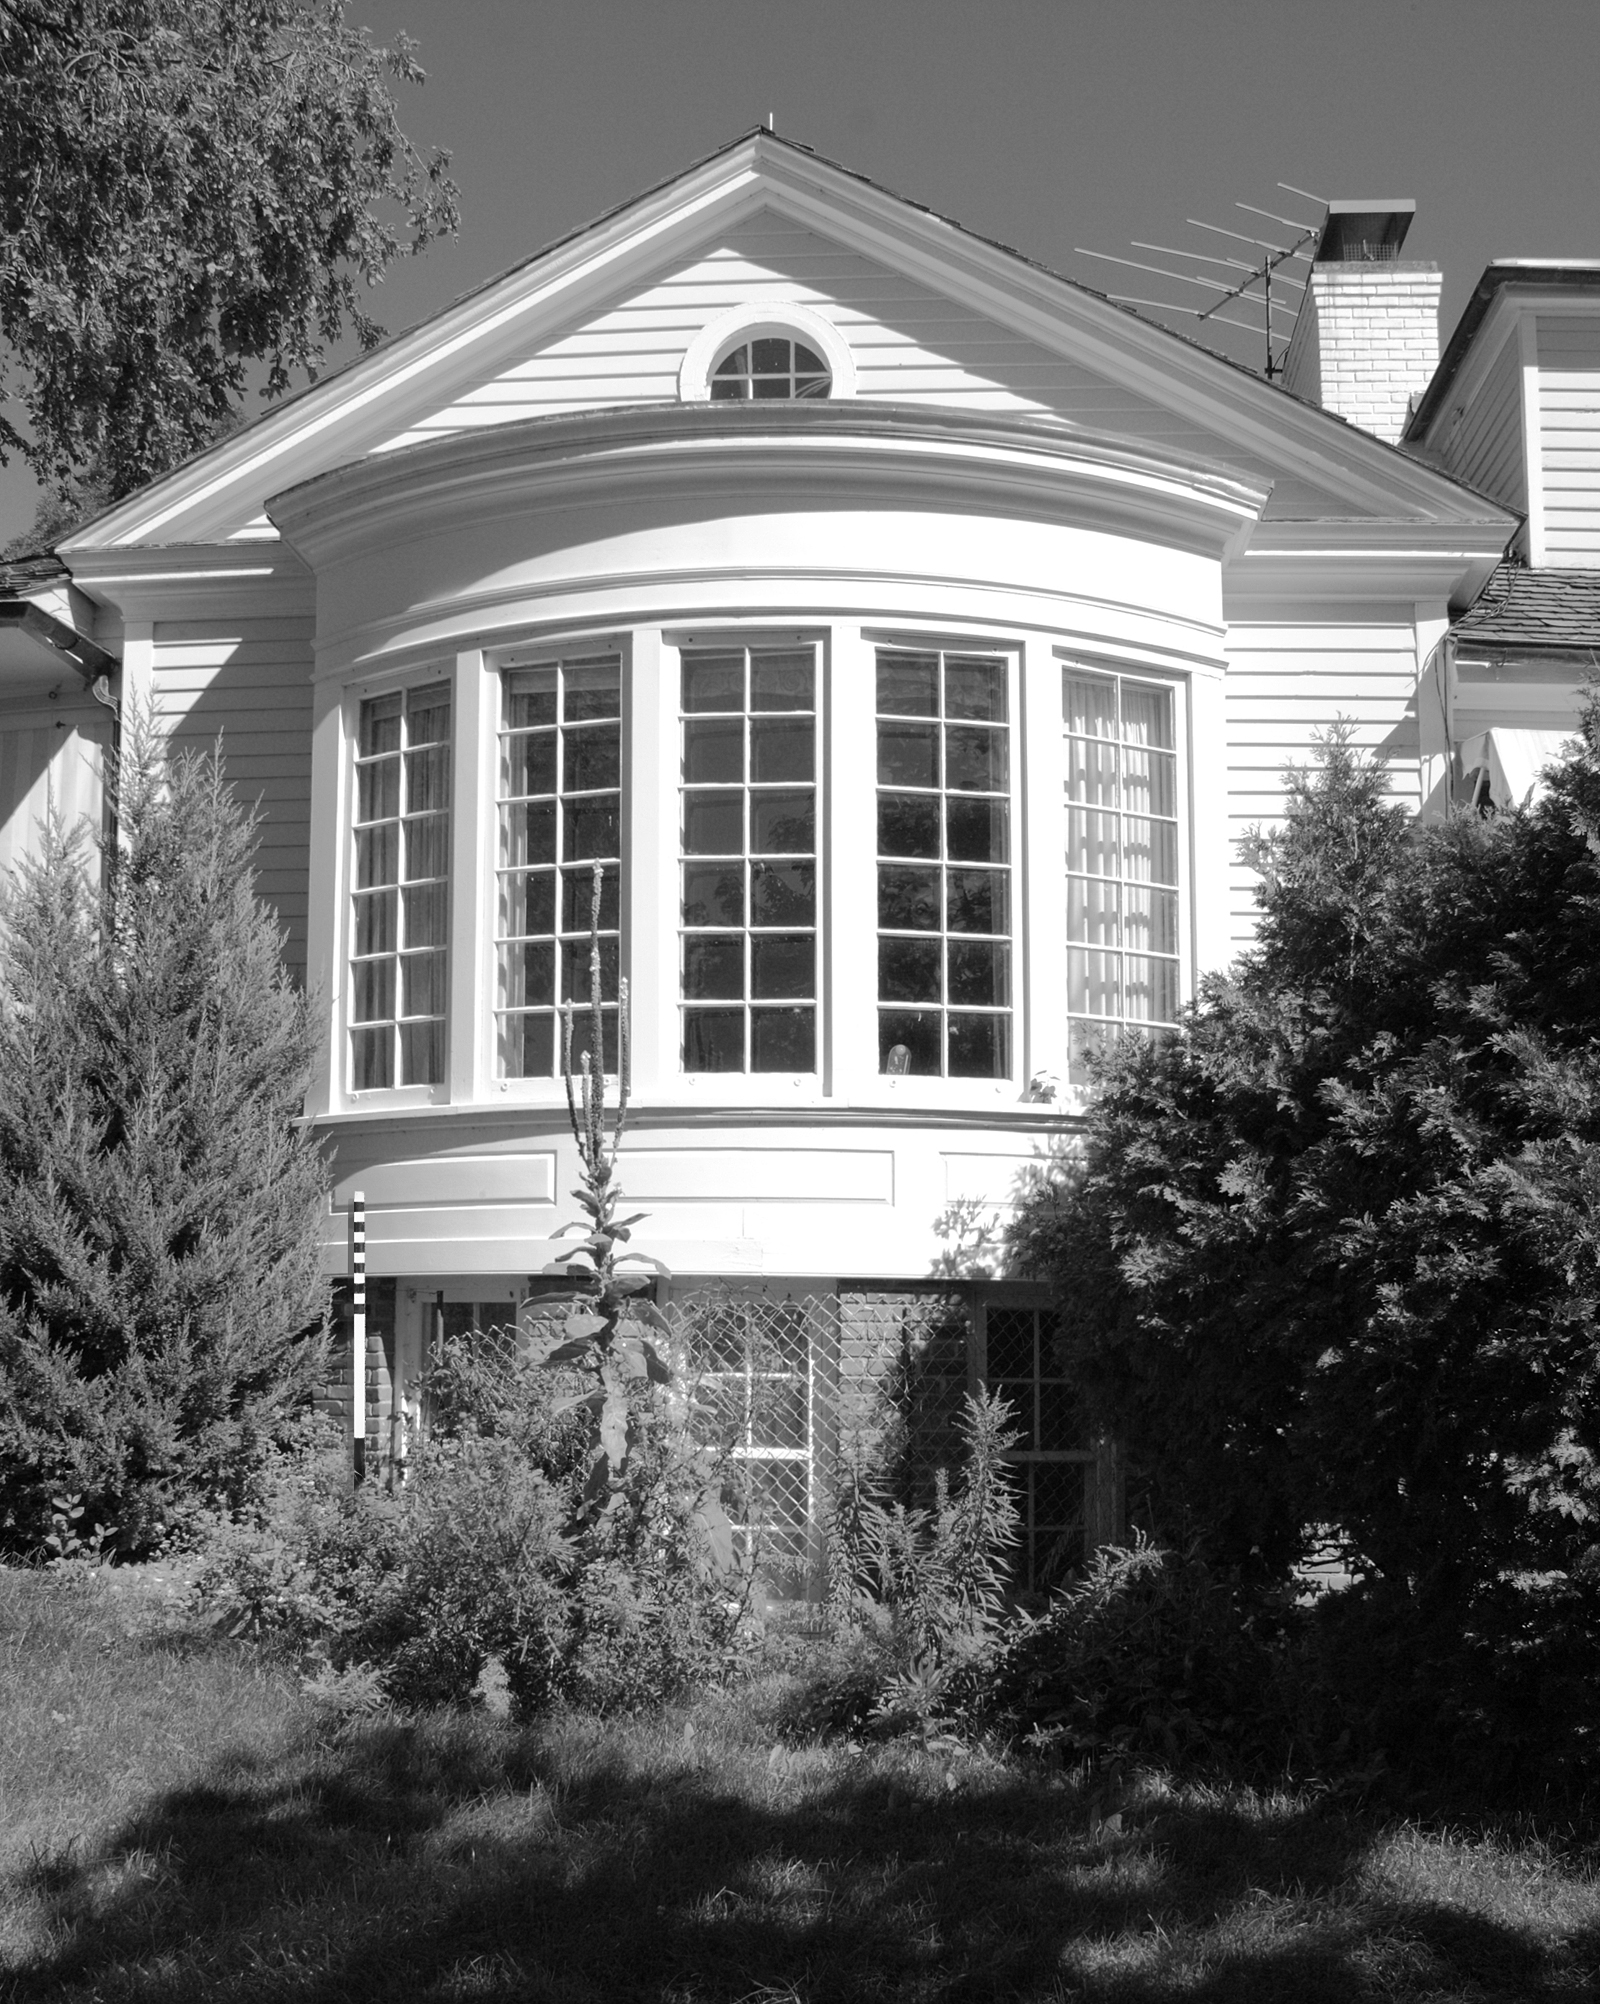 Main House South Elevation HE-WZC-007 (Please credit Daniel R. Pratt and the Minnesota Historic Property Record)